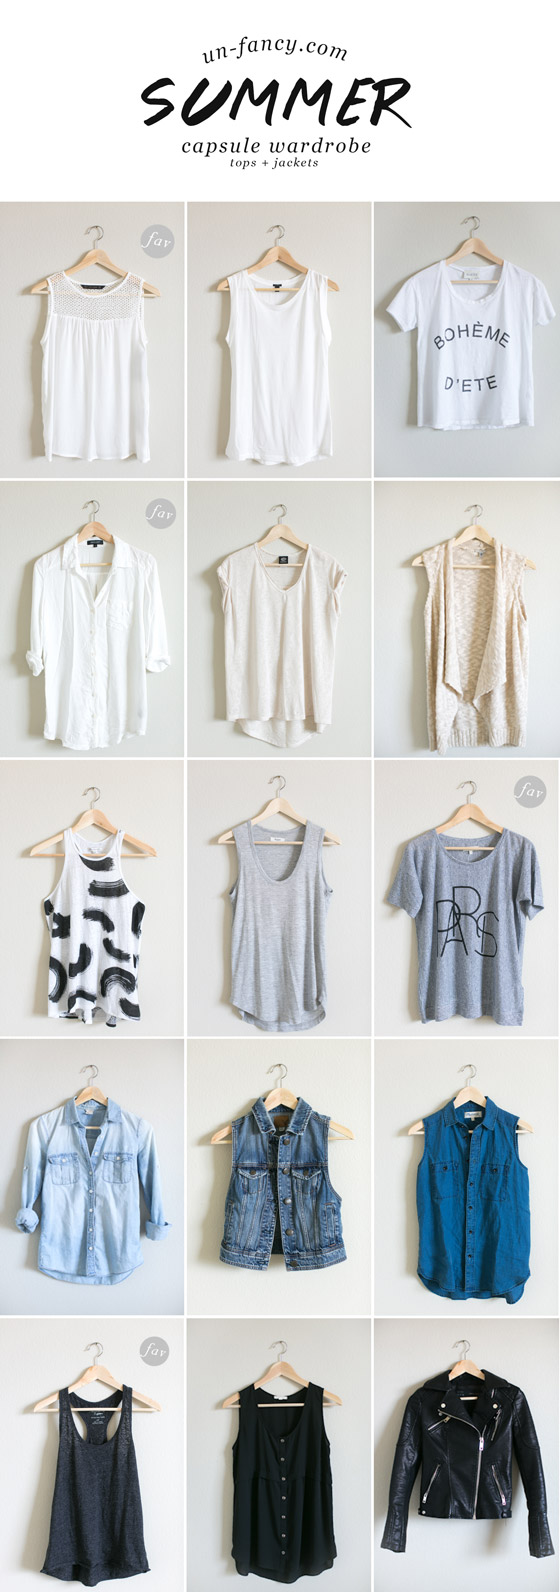 my capsule wardrobe    summer 2014 316381956